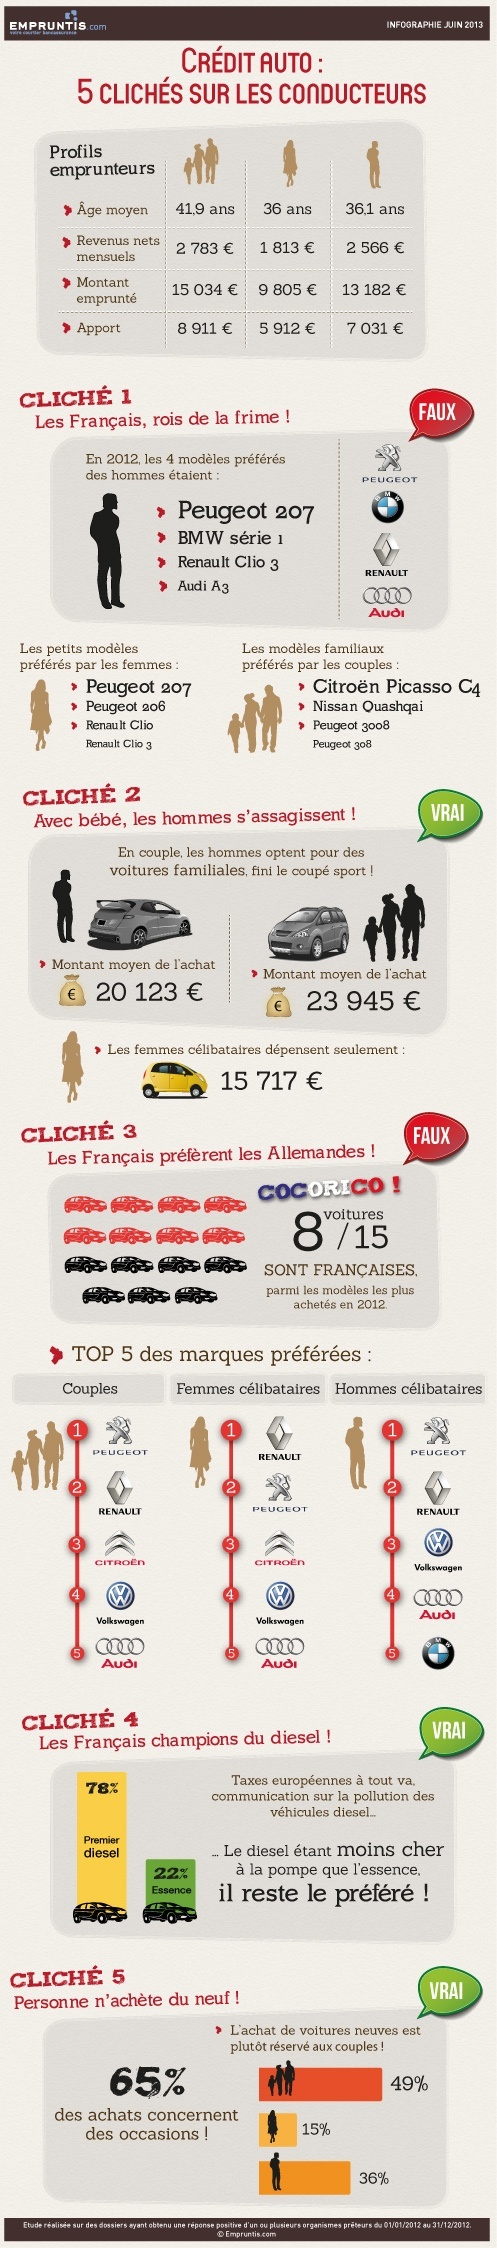 infographie cr dit auto 5 clich s sur les conducteurs. Black Bedroom Furniture Sets. Home Design Ideas